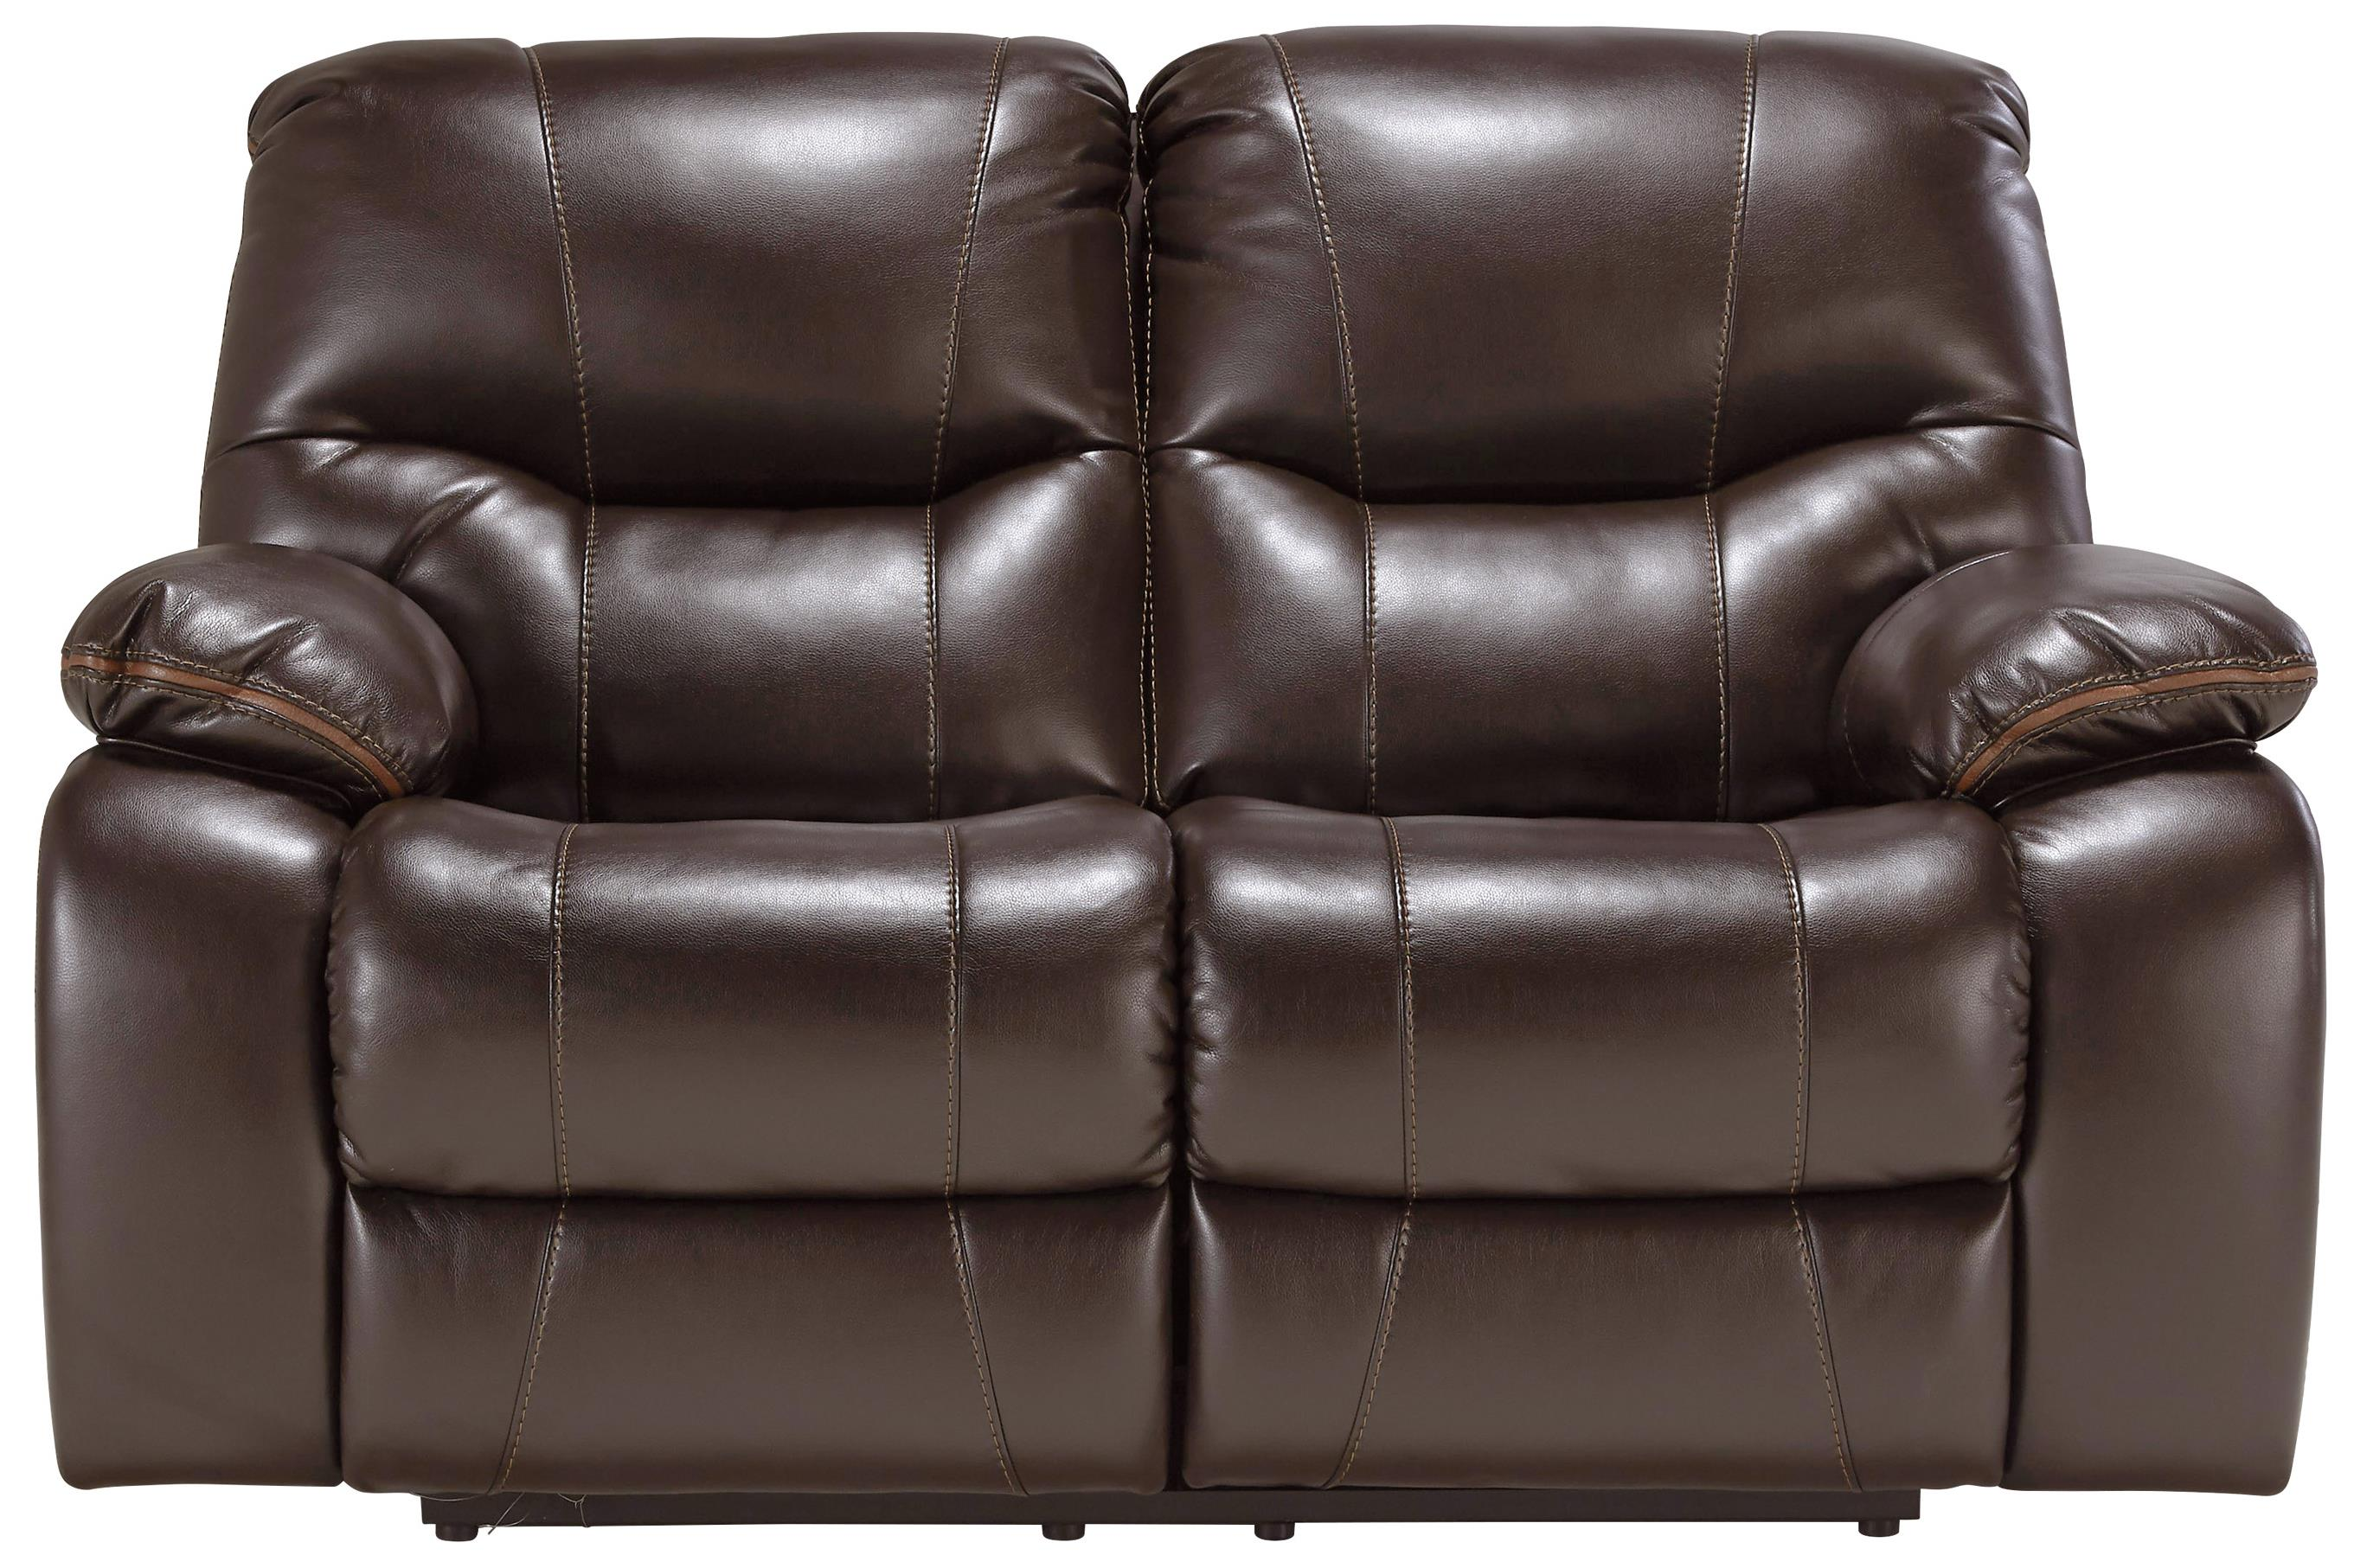 Signature Design by Ashley Pranas Reclining Loveseat - Item Number: 4790086